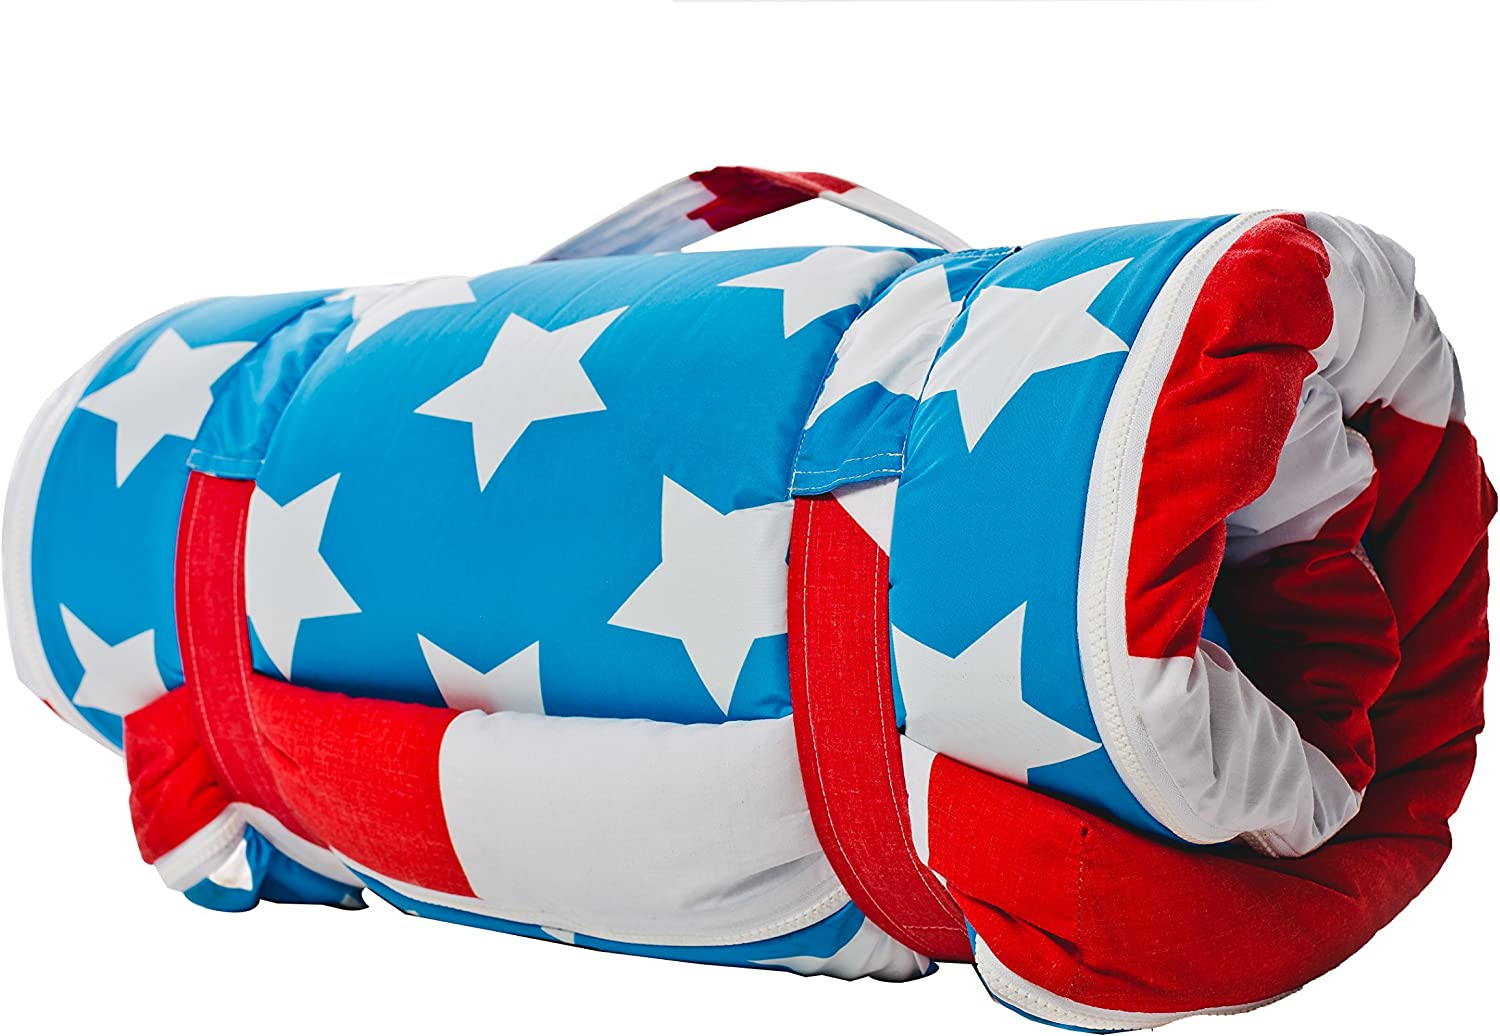 Quambee Swag Travel Bed (Foam Mattress,Pillow and Sleeping Bag)